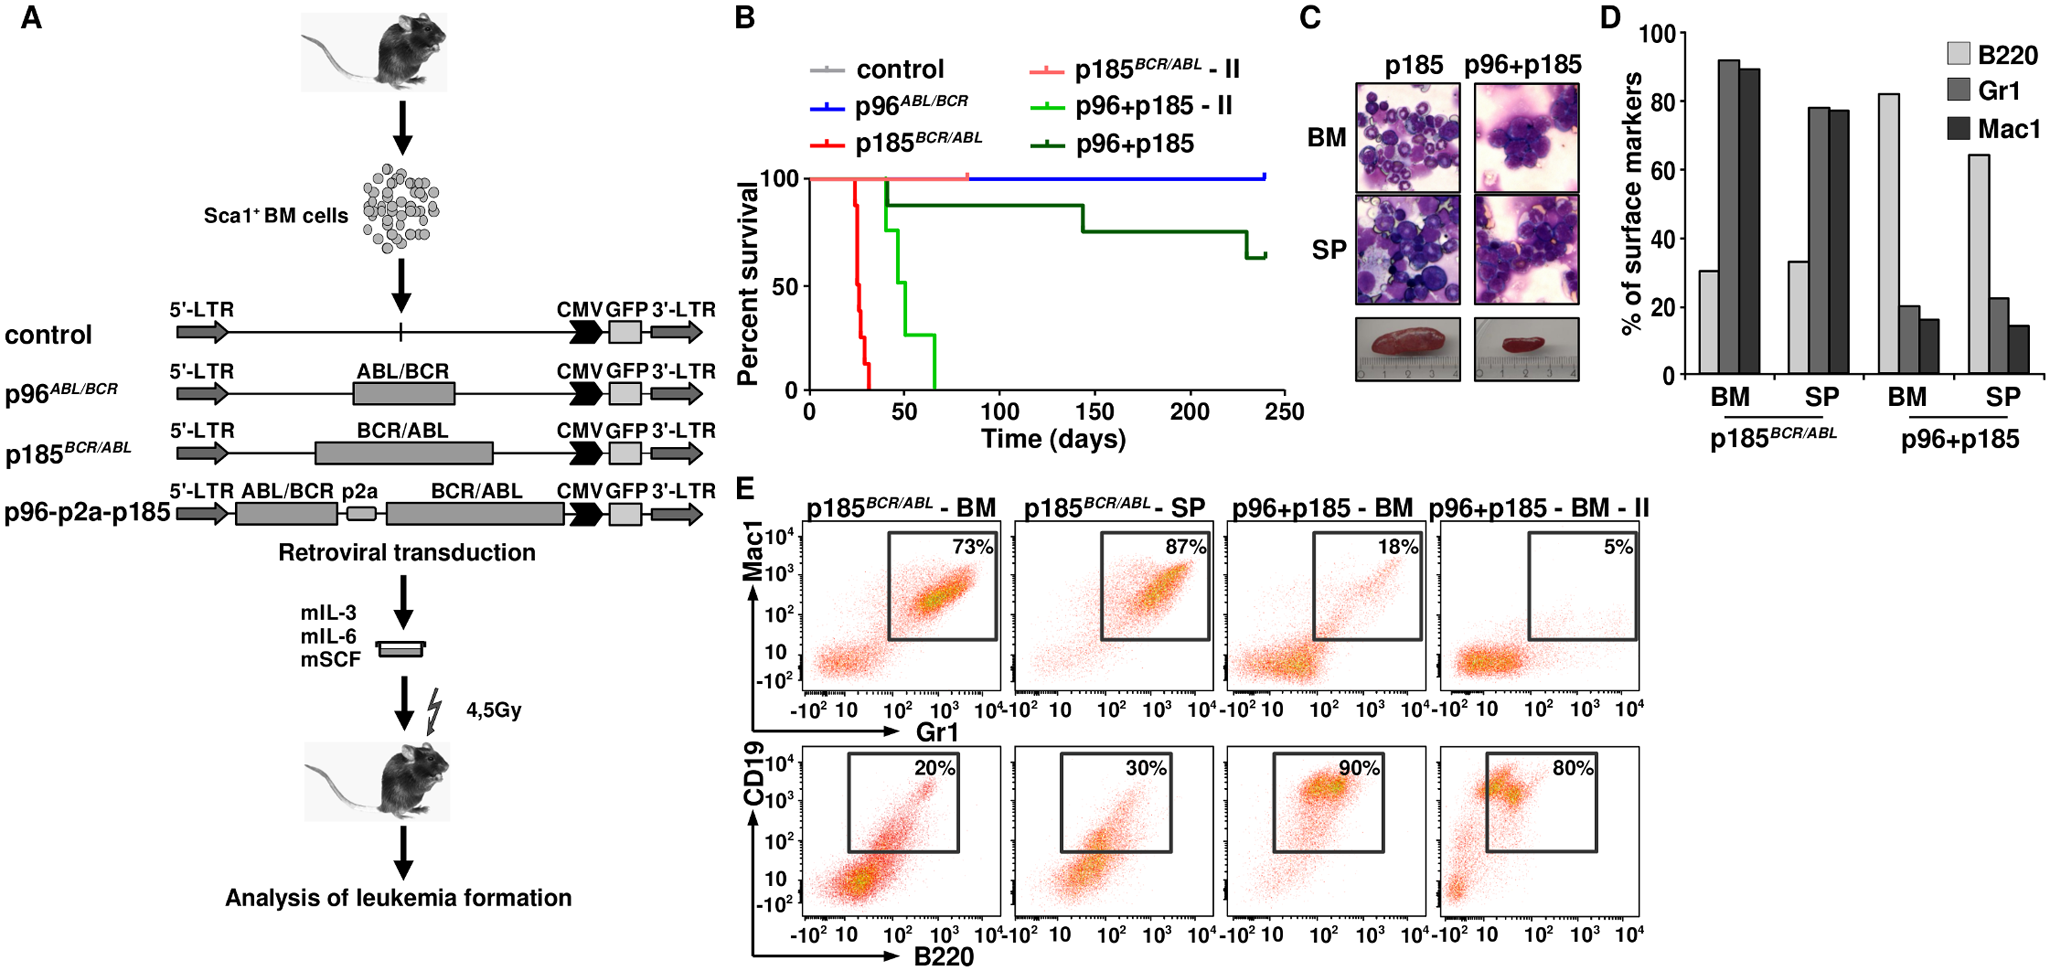 The leukemogenic potential of t(9;22) fusion proteins.